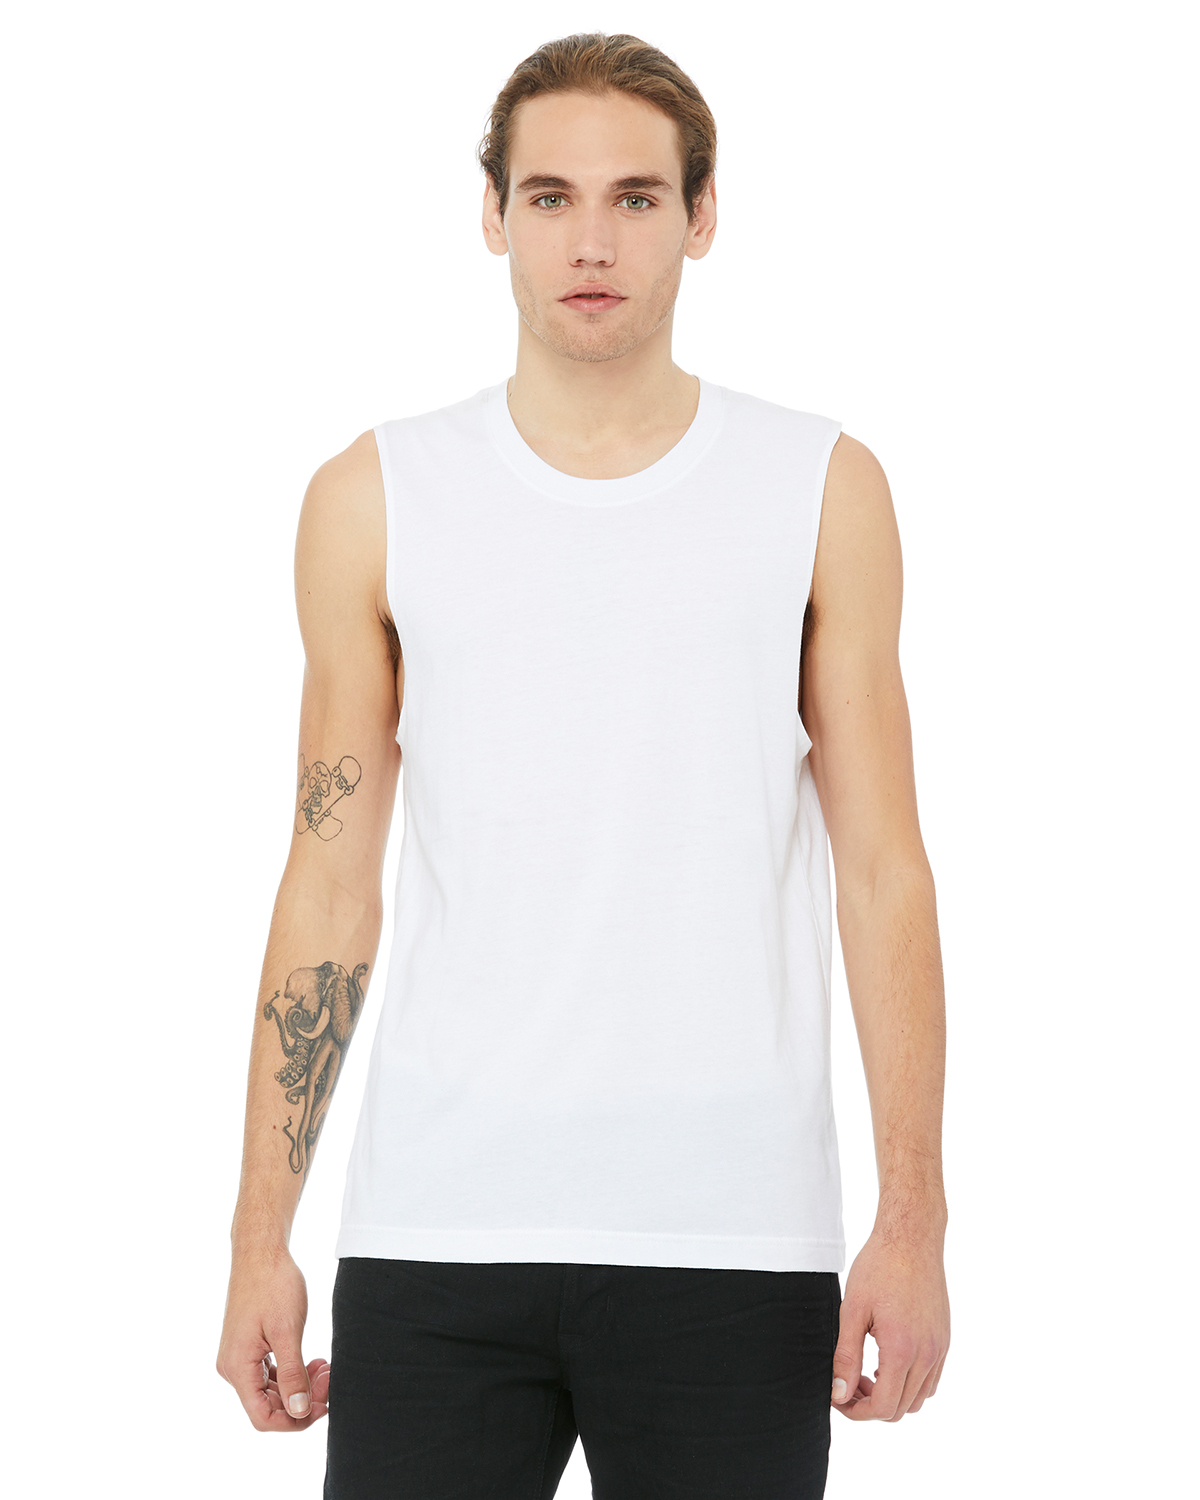 Canvas Unisex Jersey Muscle Tank Top 3483 XS-2XL 8 Colors Bella